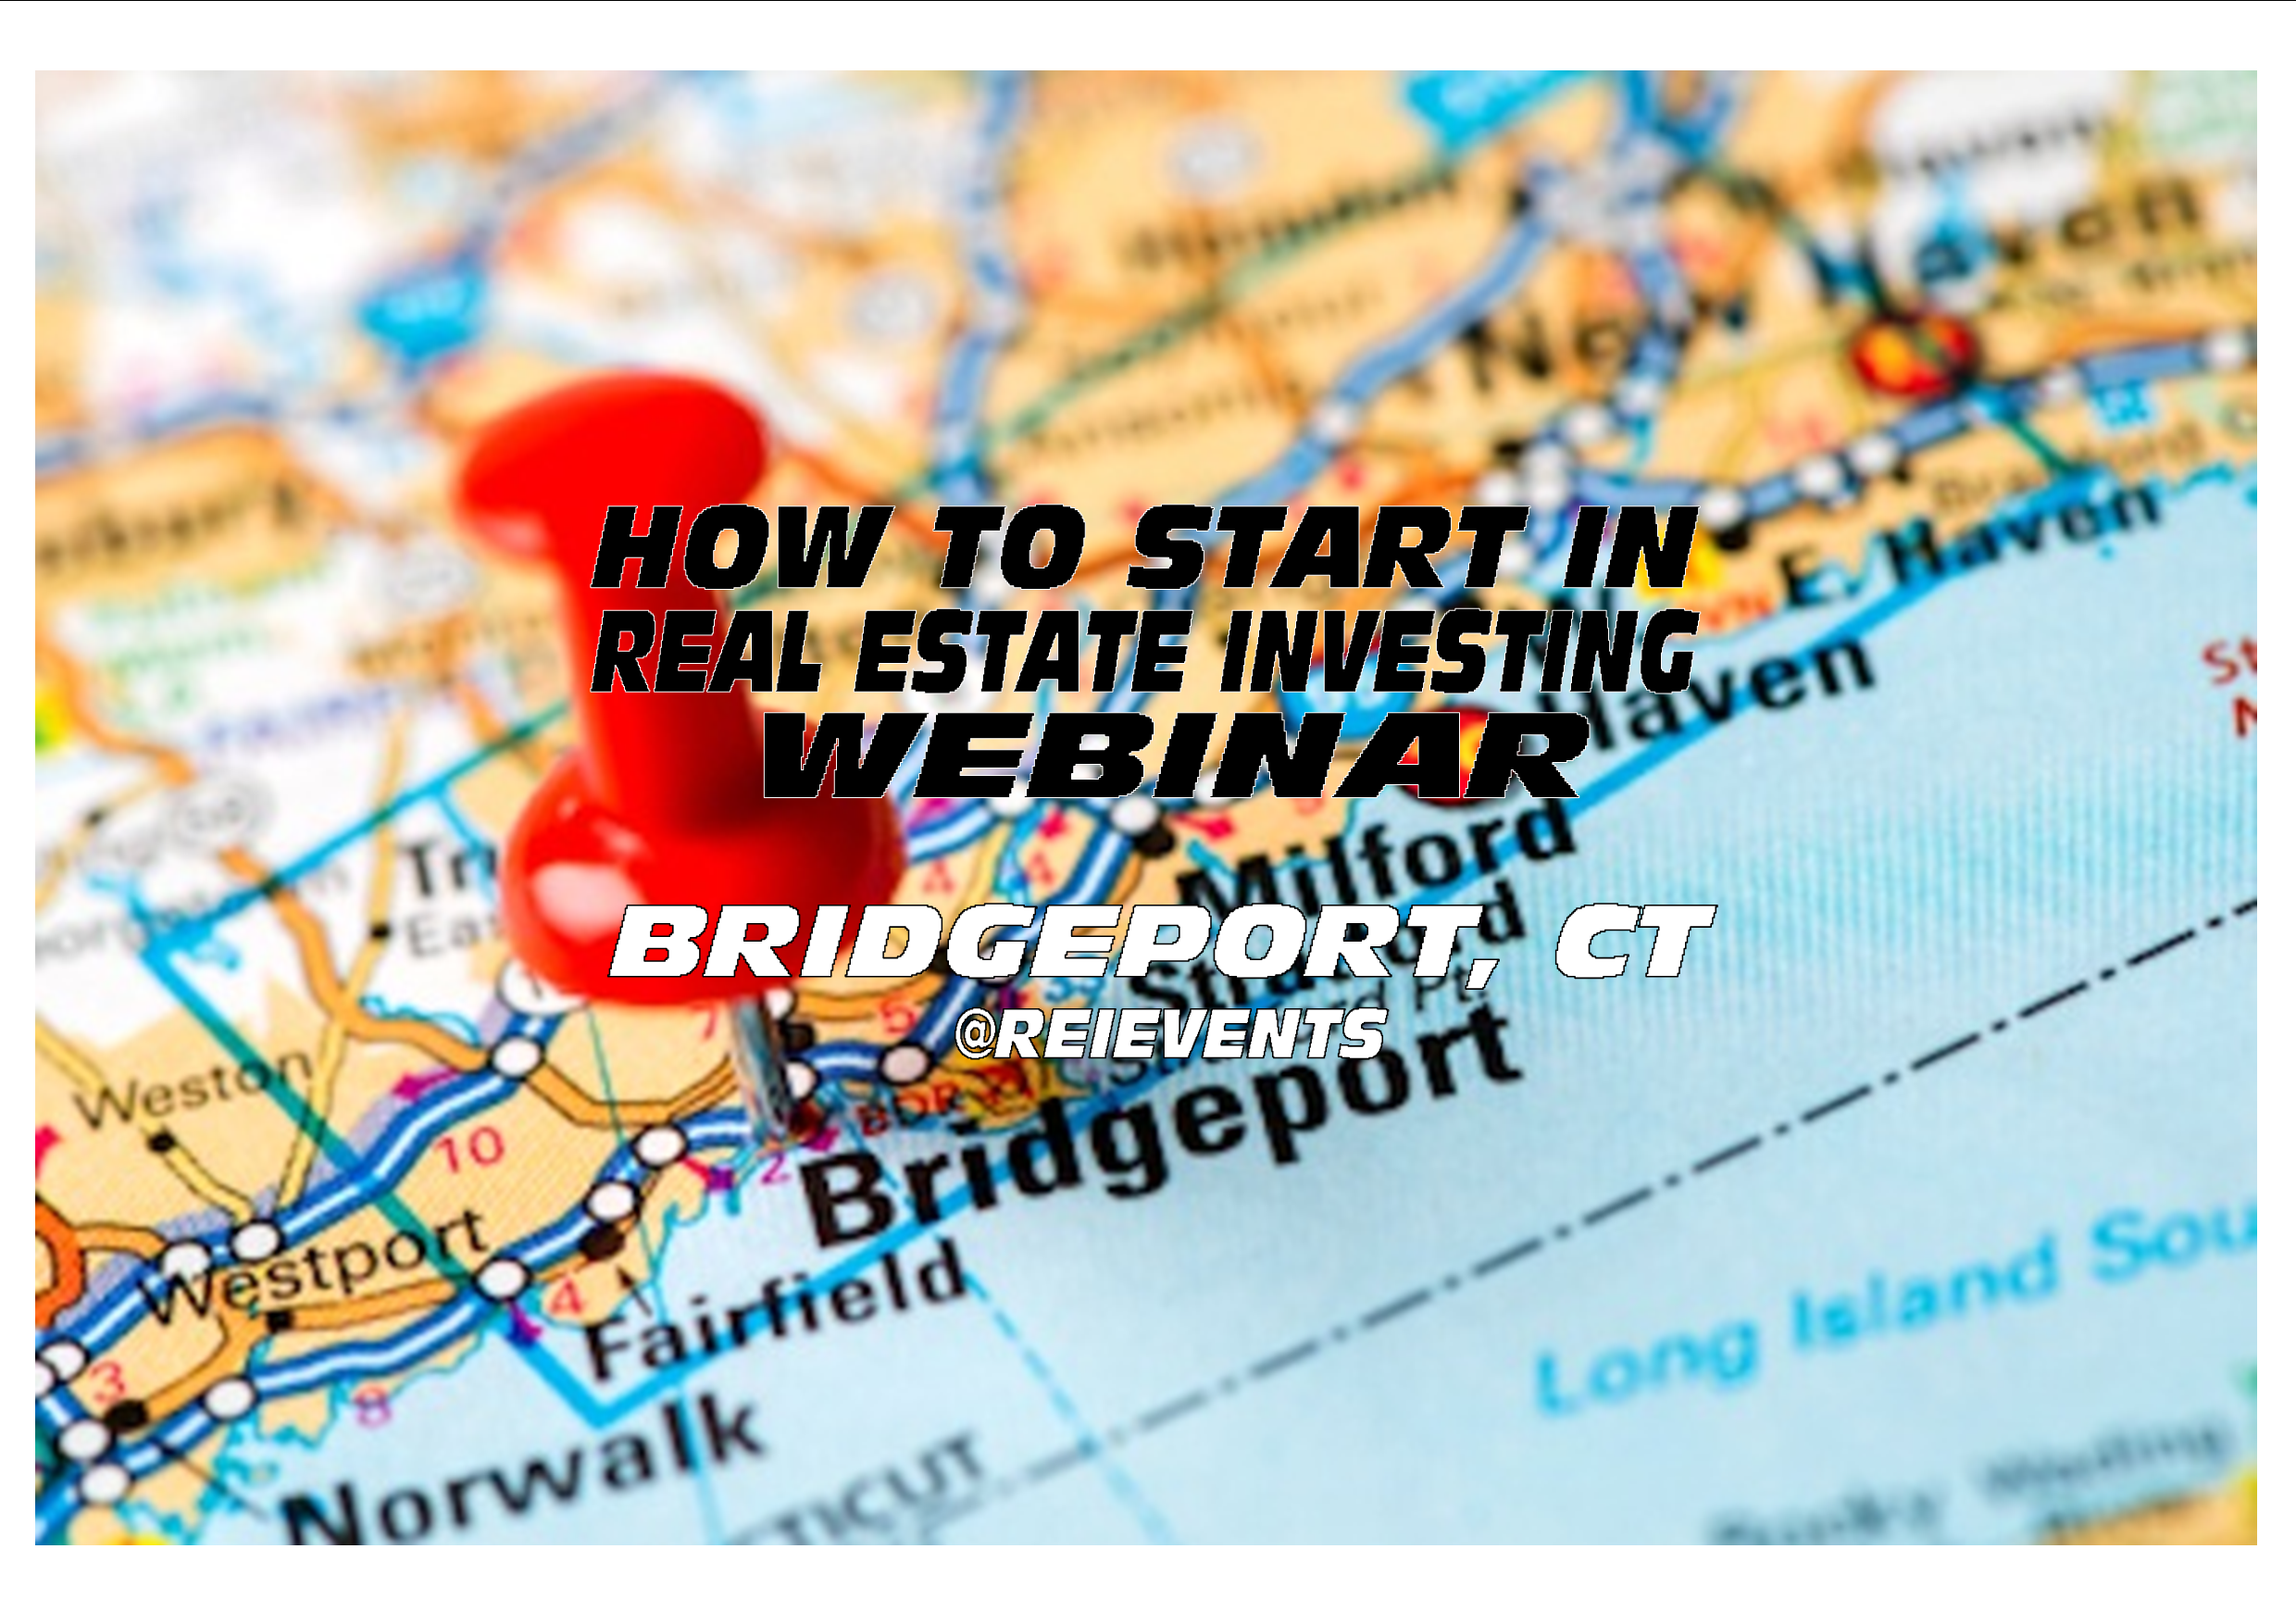 HOW TO START IN REAL ESTATE INVESTING - WEBINAR - BRIDGEPORT, CT